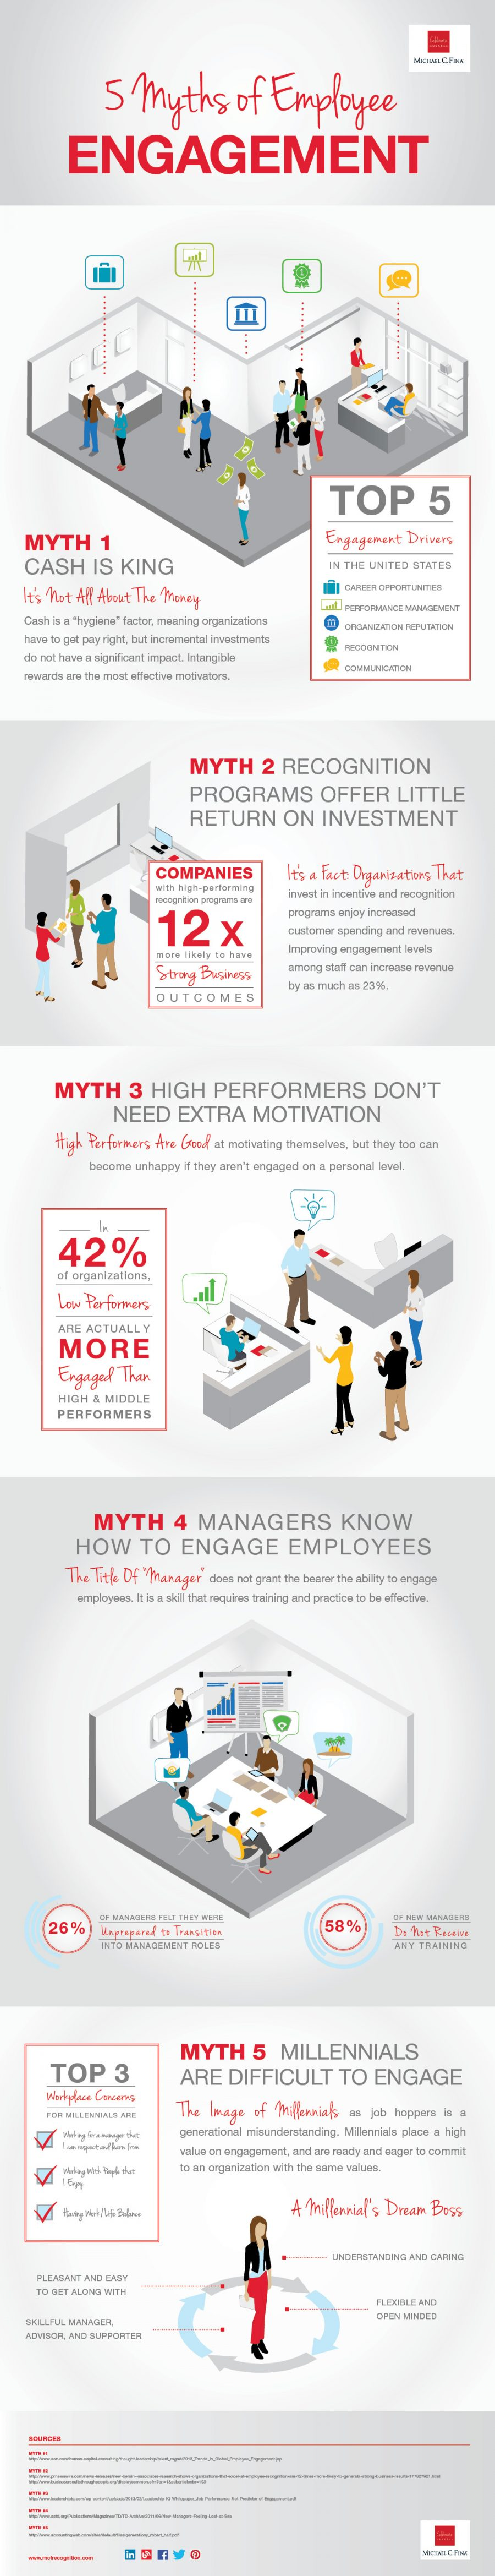 5 Myths of Employee Engagement